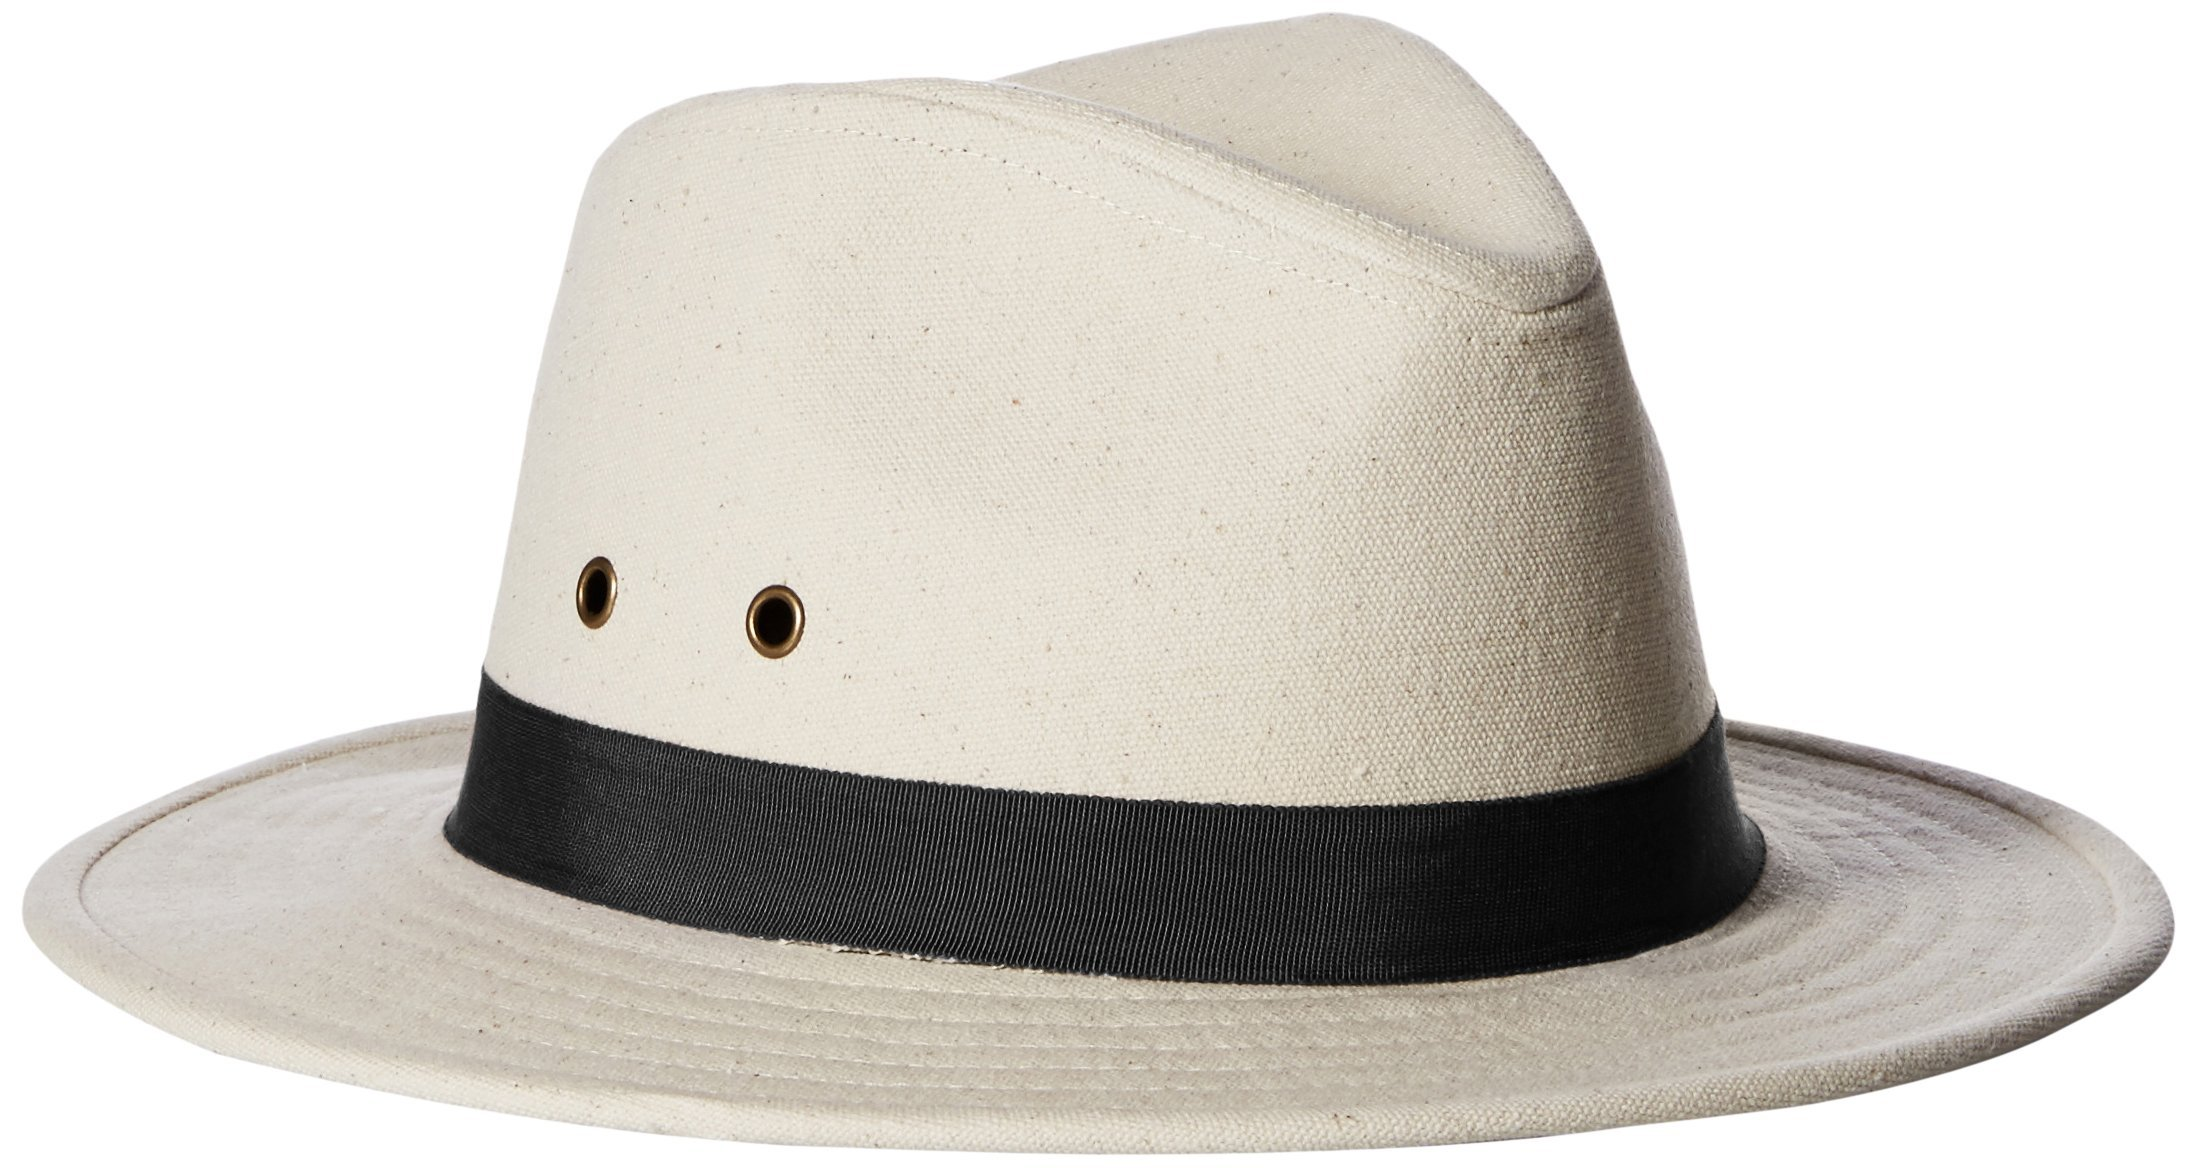 'ale by alessandra Women's Skyler Adjustable Canvas Fedora Hat with UPF 50+, Natural/Black, Adjustable Head Size by ale by Alessandra